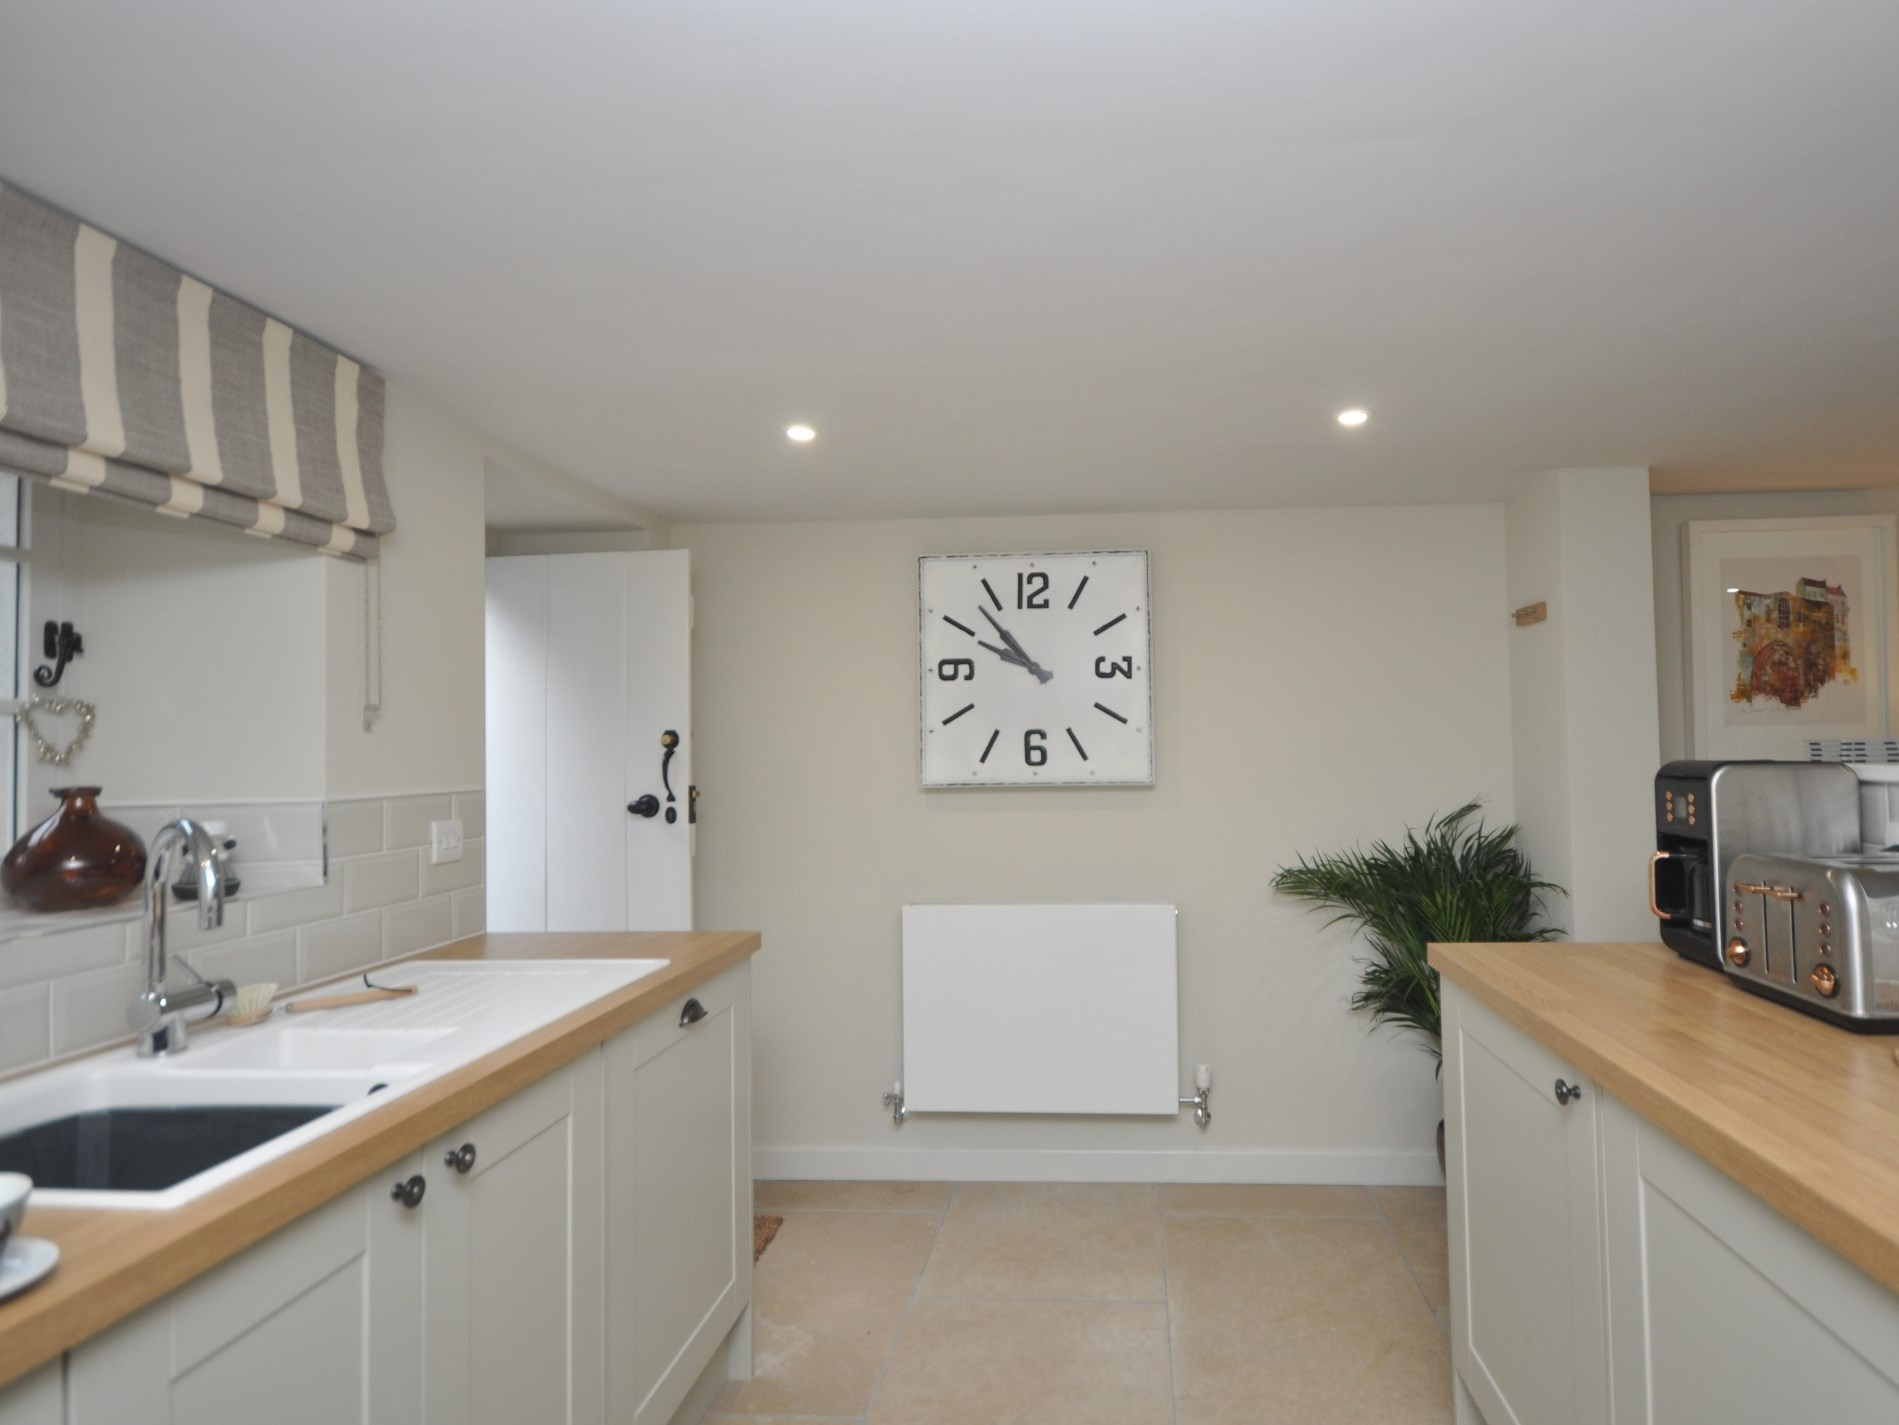 A great kitchen area thats well-equipped